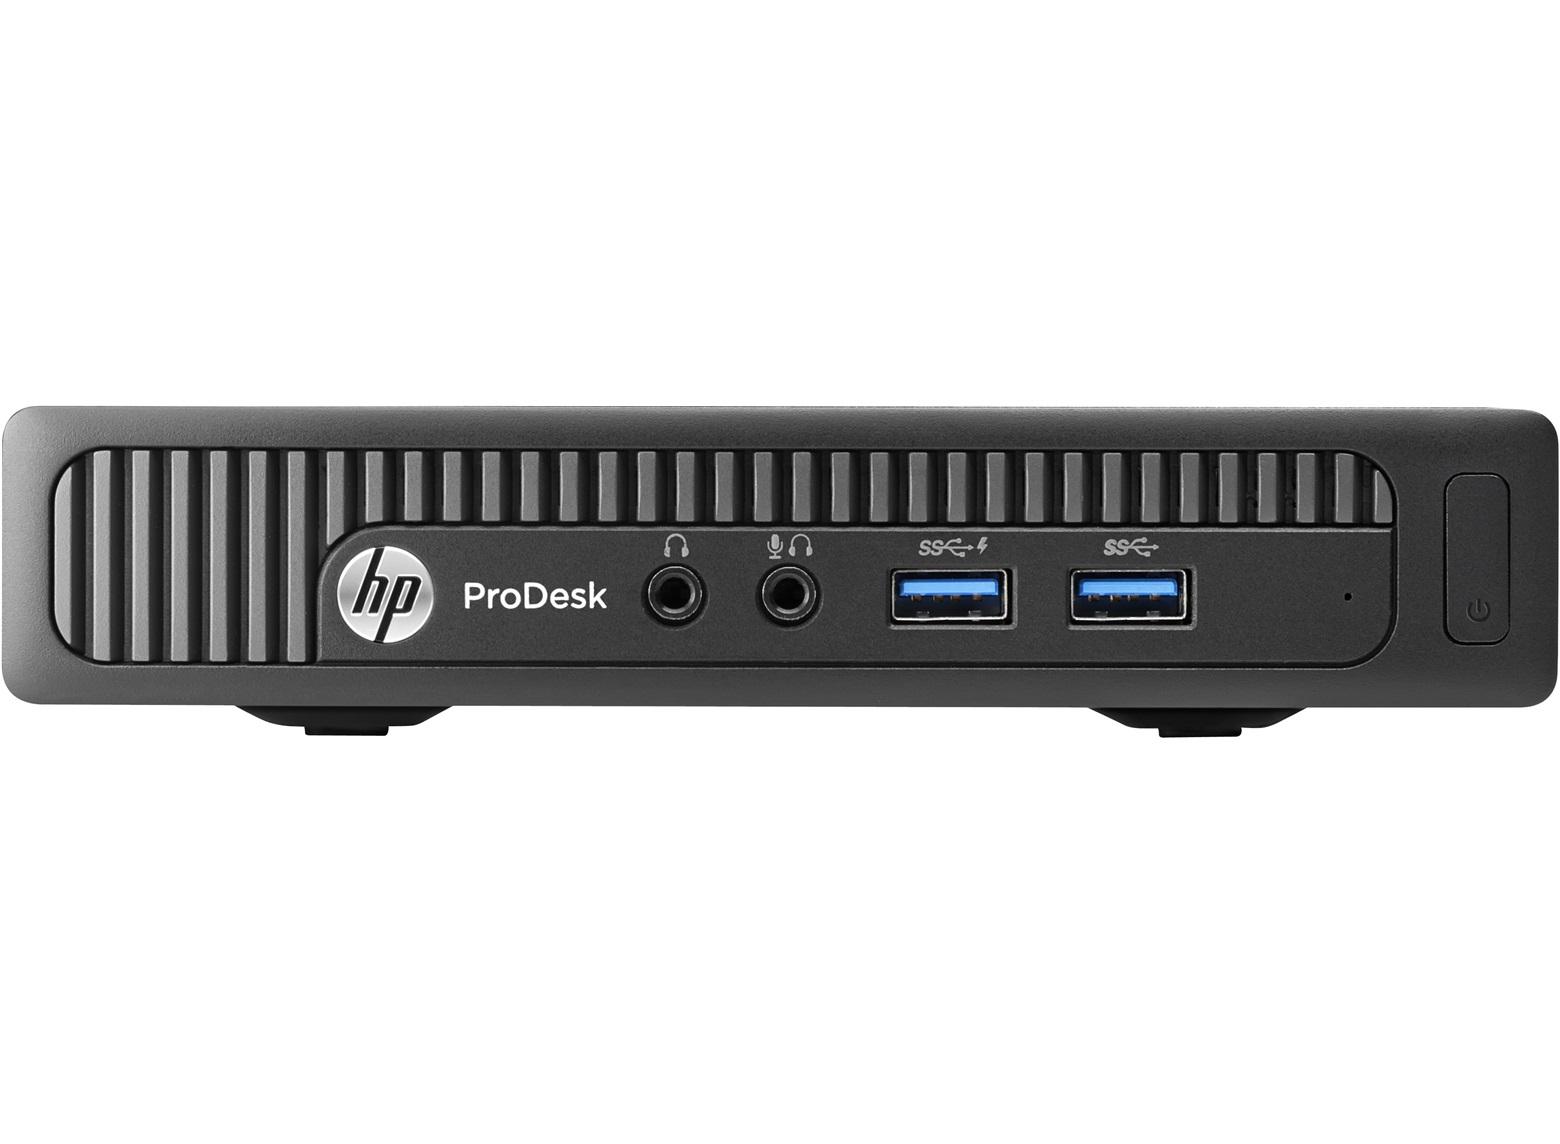 HP ProDesk 600 G1 3.1GHz i3-4160T Nero Mini PC